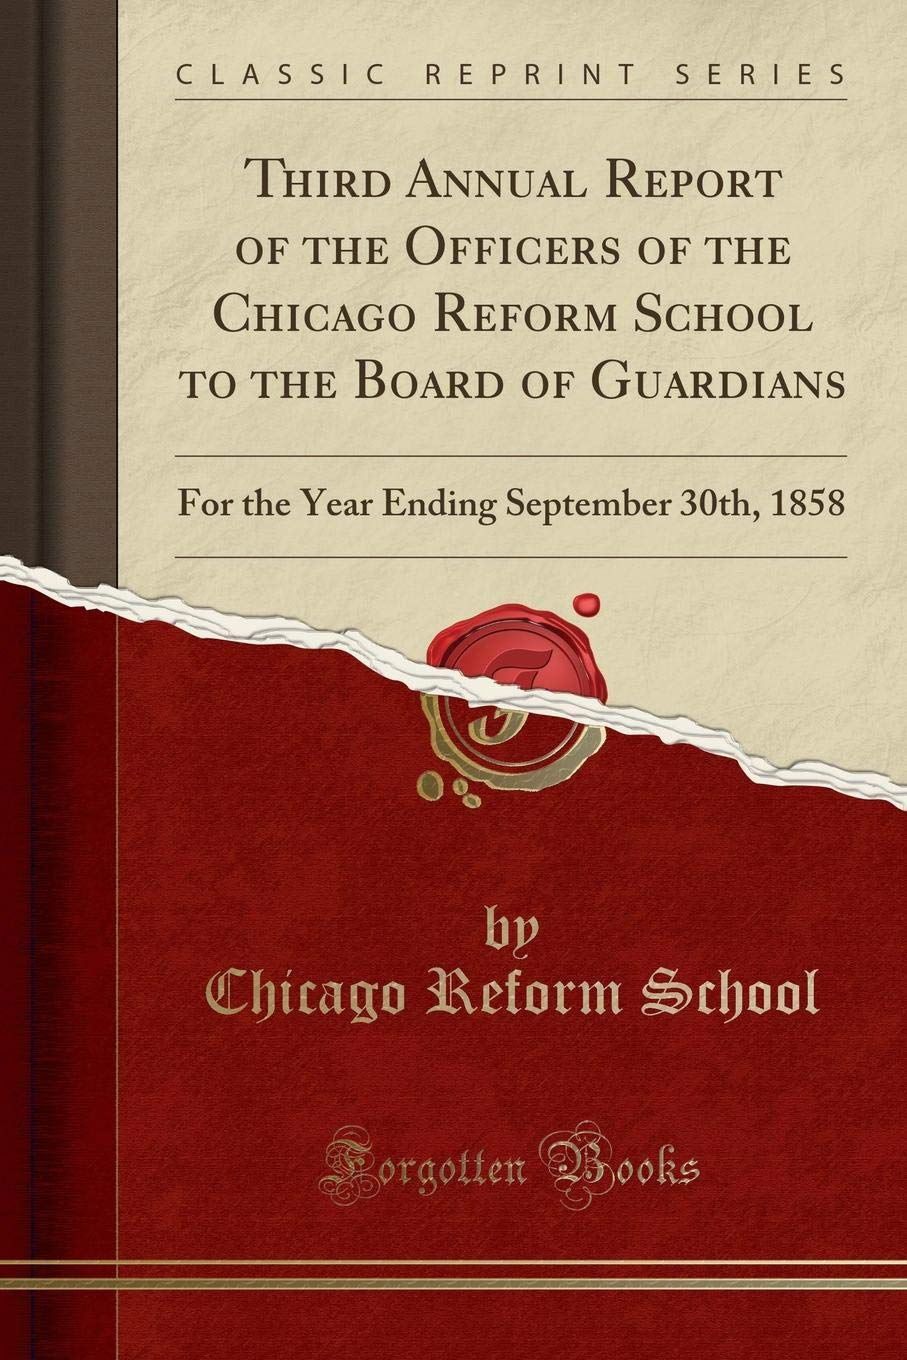 Download Third Annual Report of the Officers of the Chicago Reform School to the Board of Guardians: For the Year Ending September 30th, 1858 (Classic Reprint) pdf epub